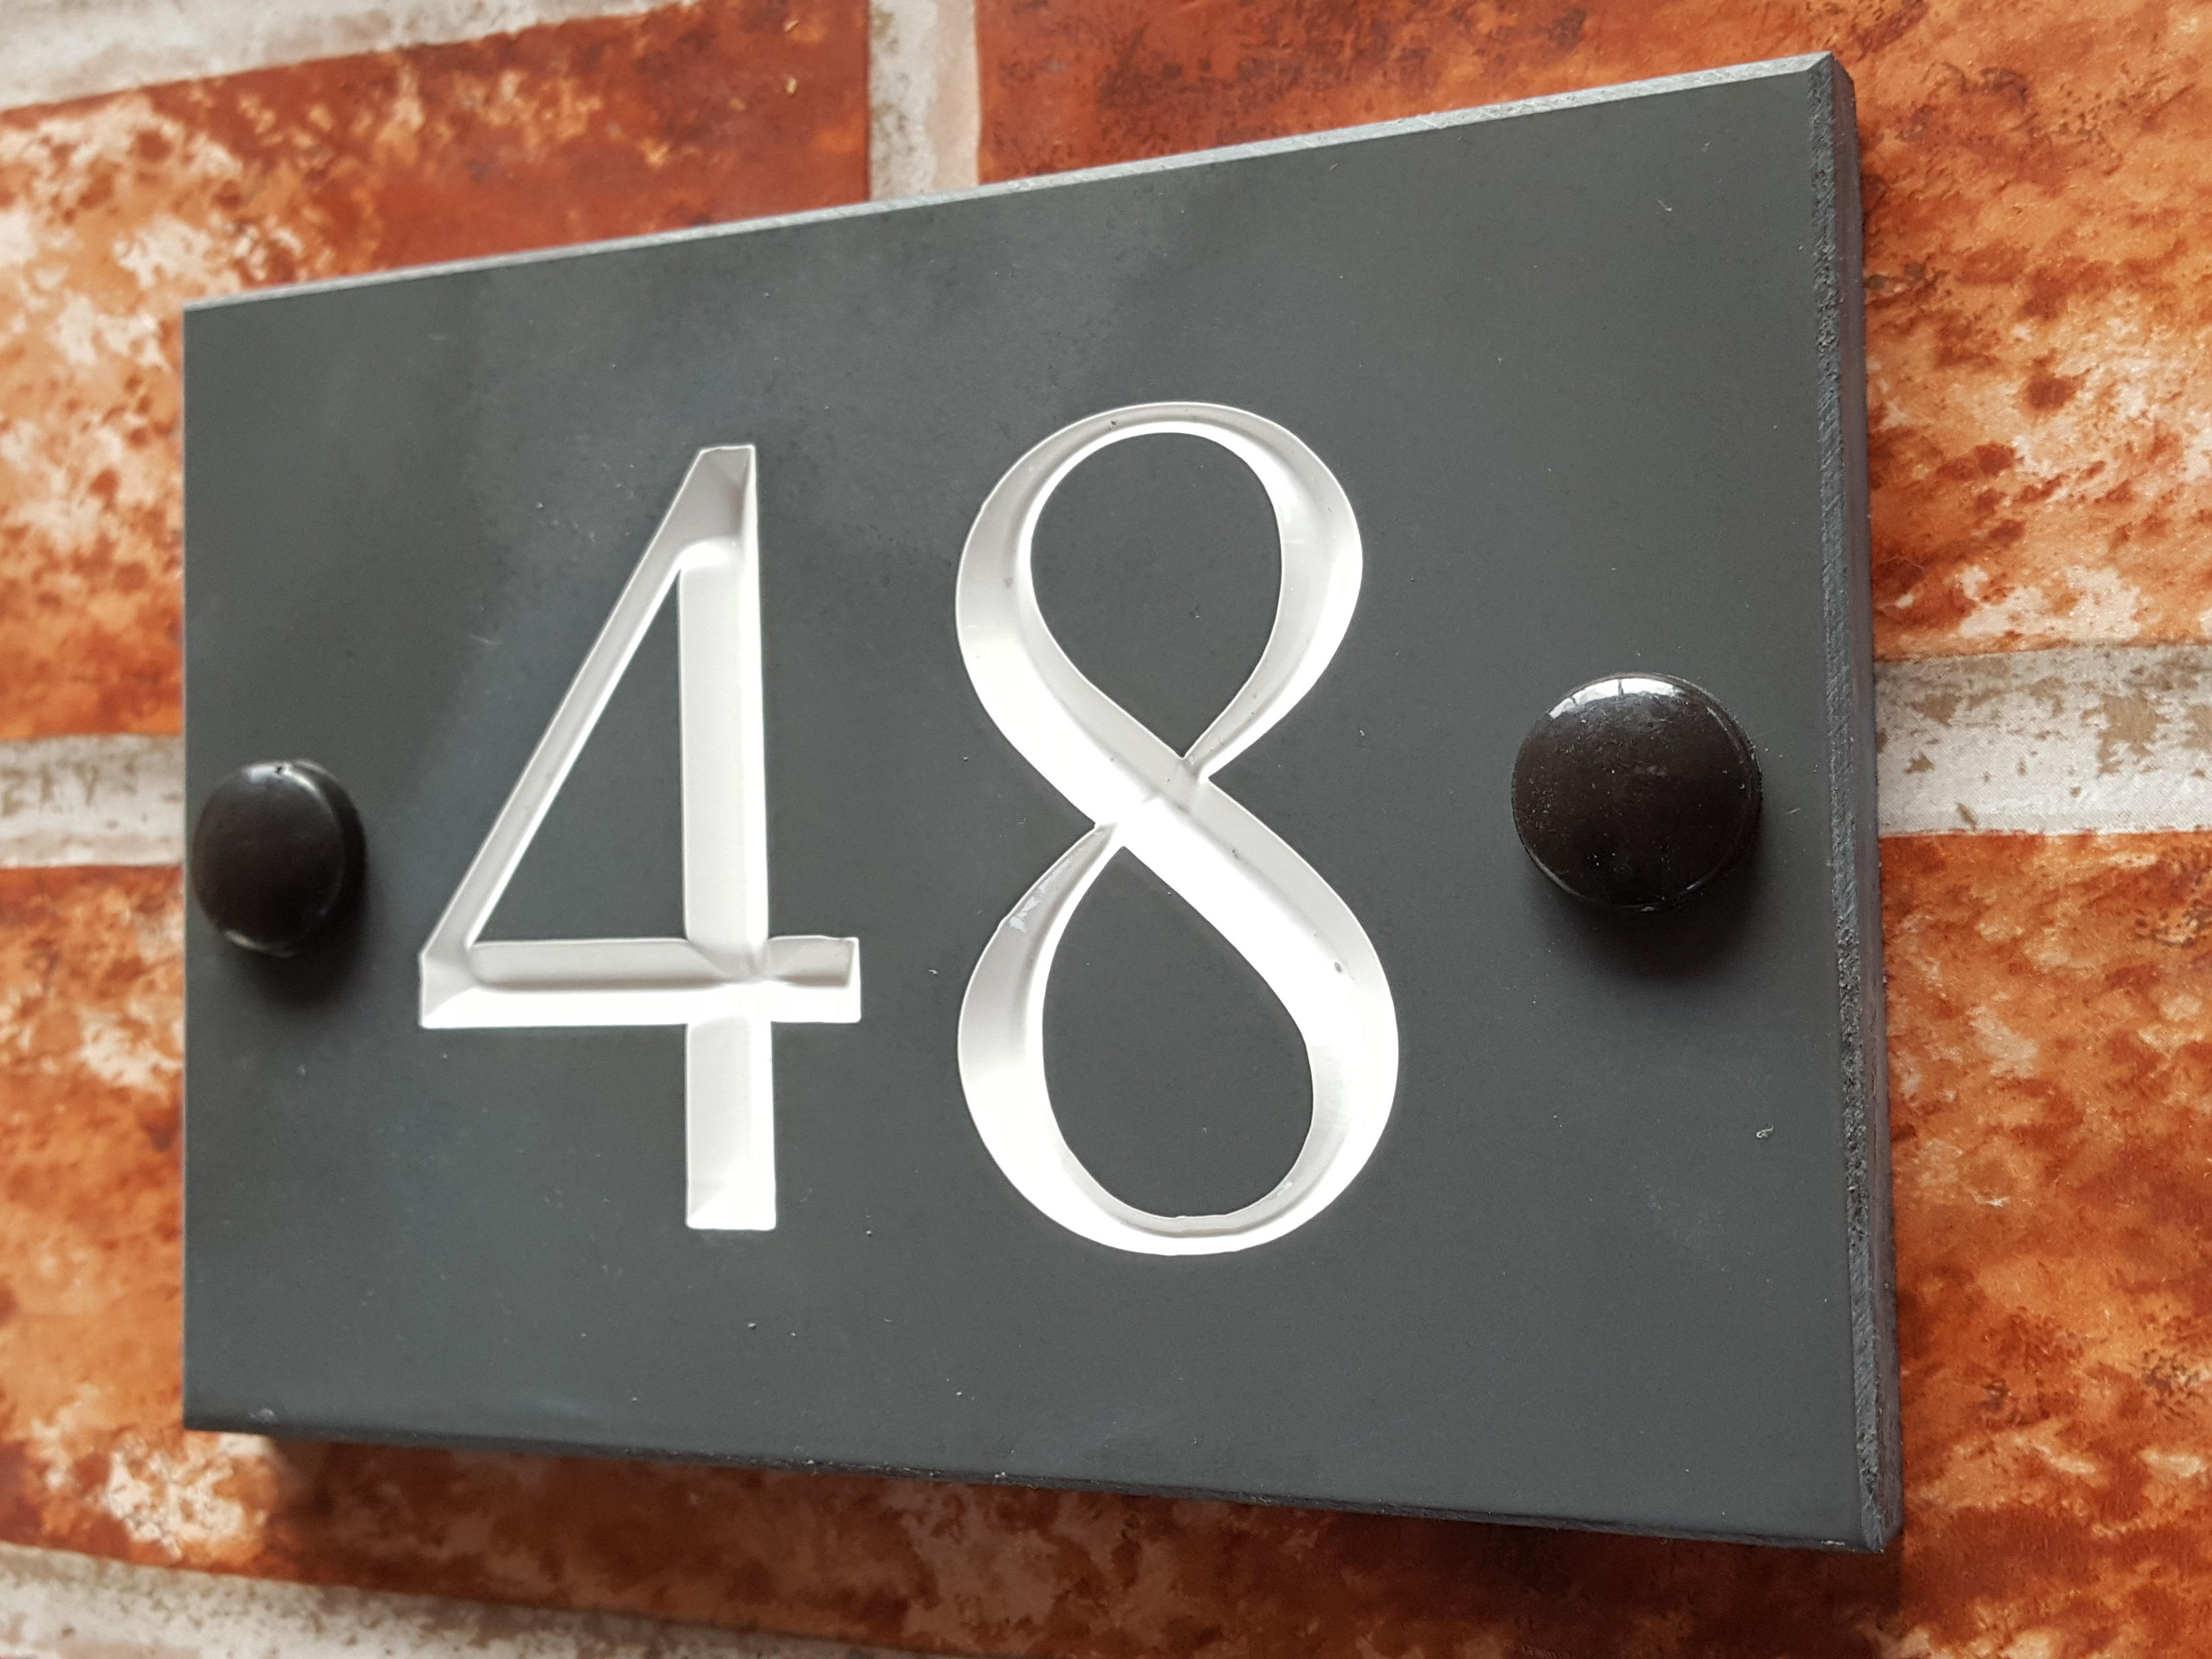 Budget house number plate displaying 48 in white times roman font